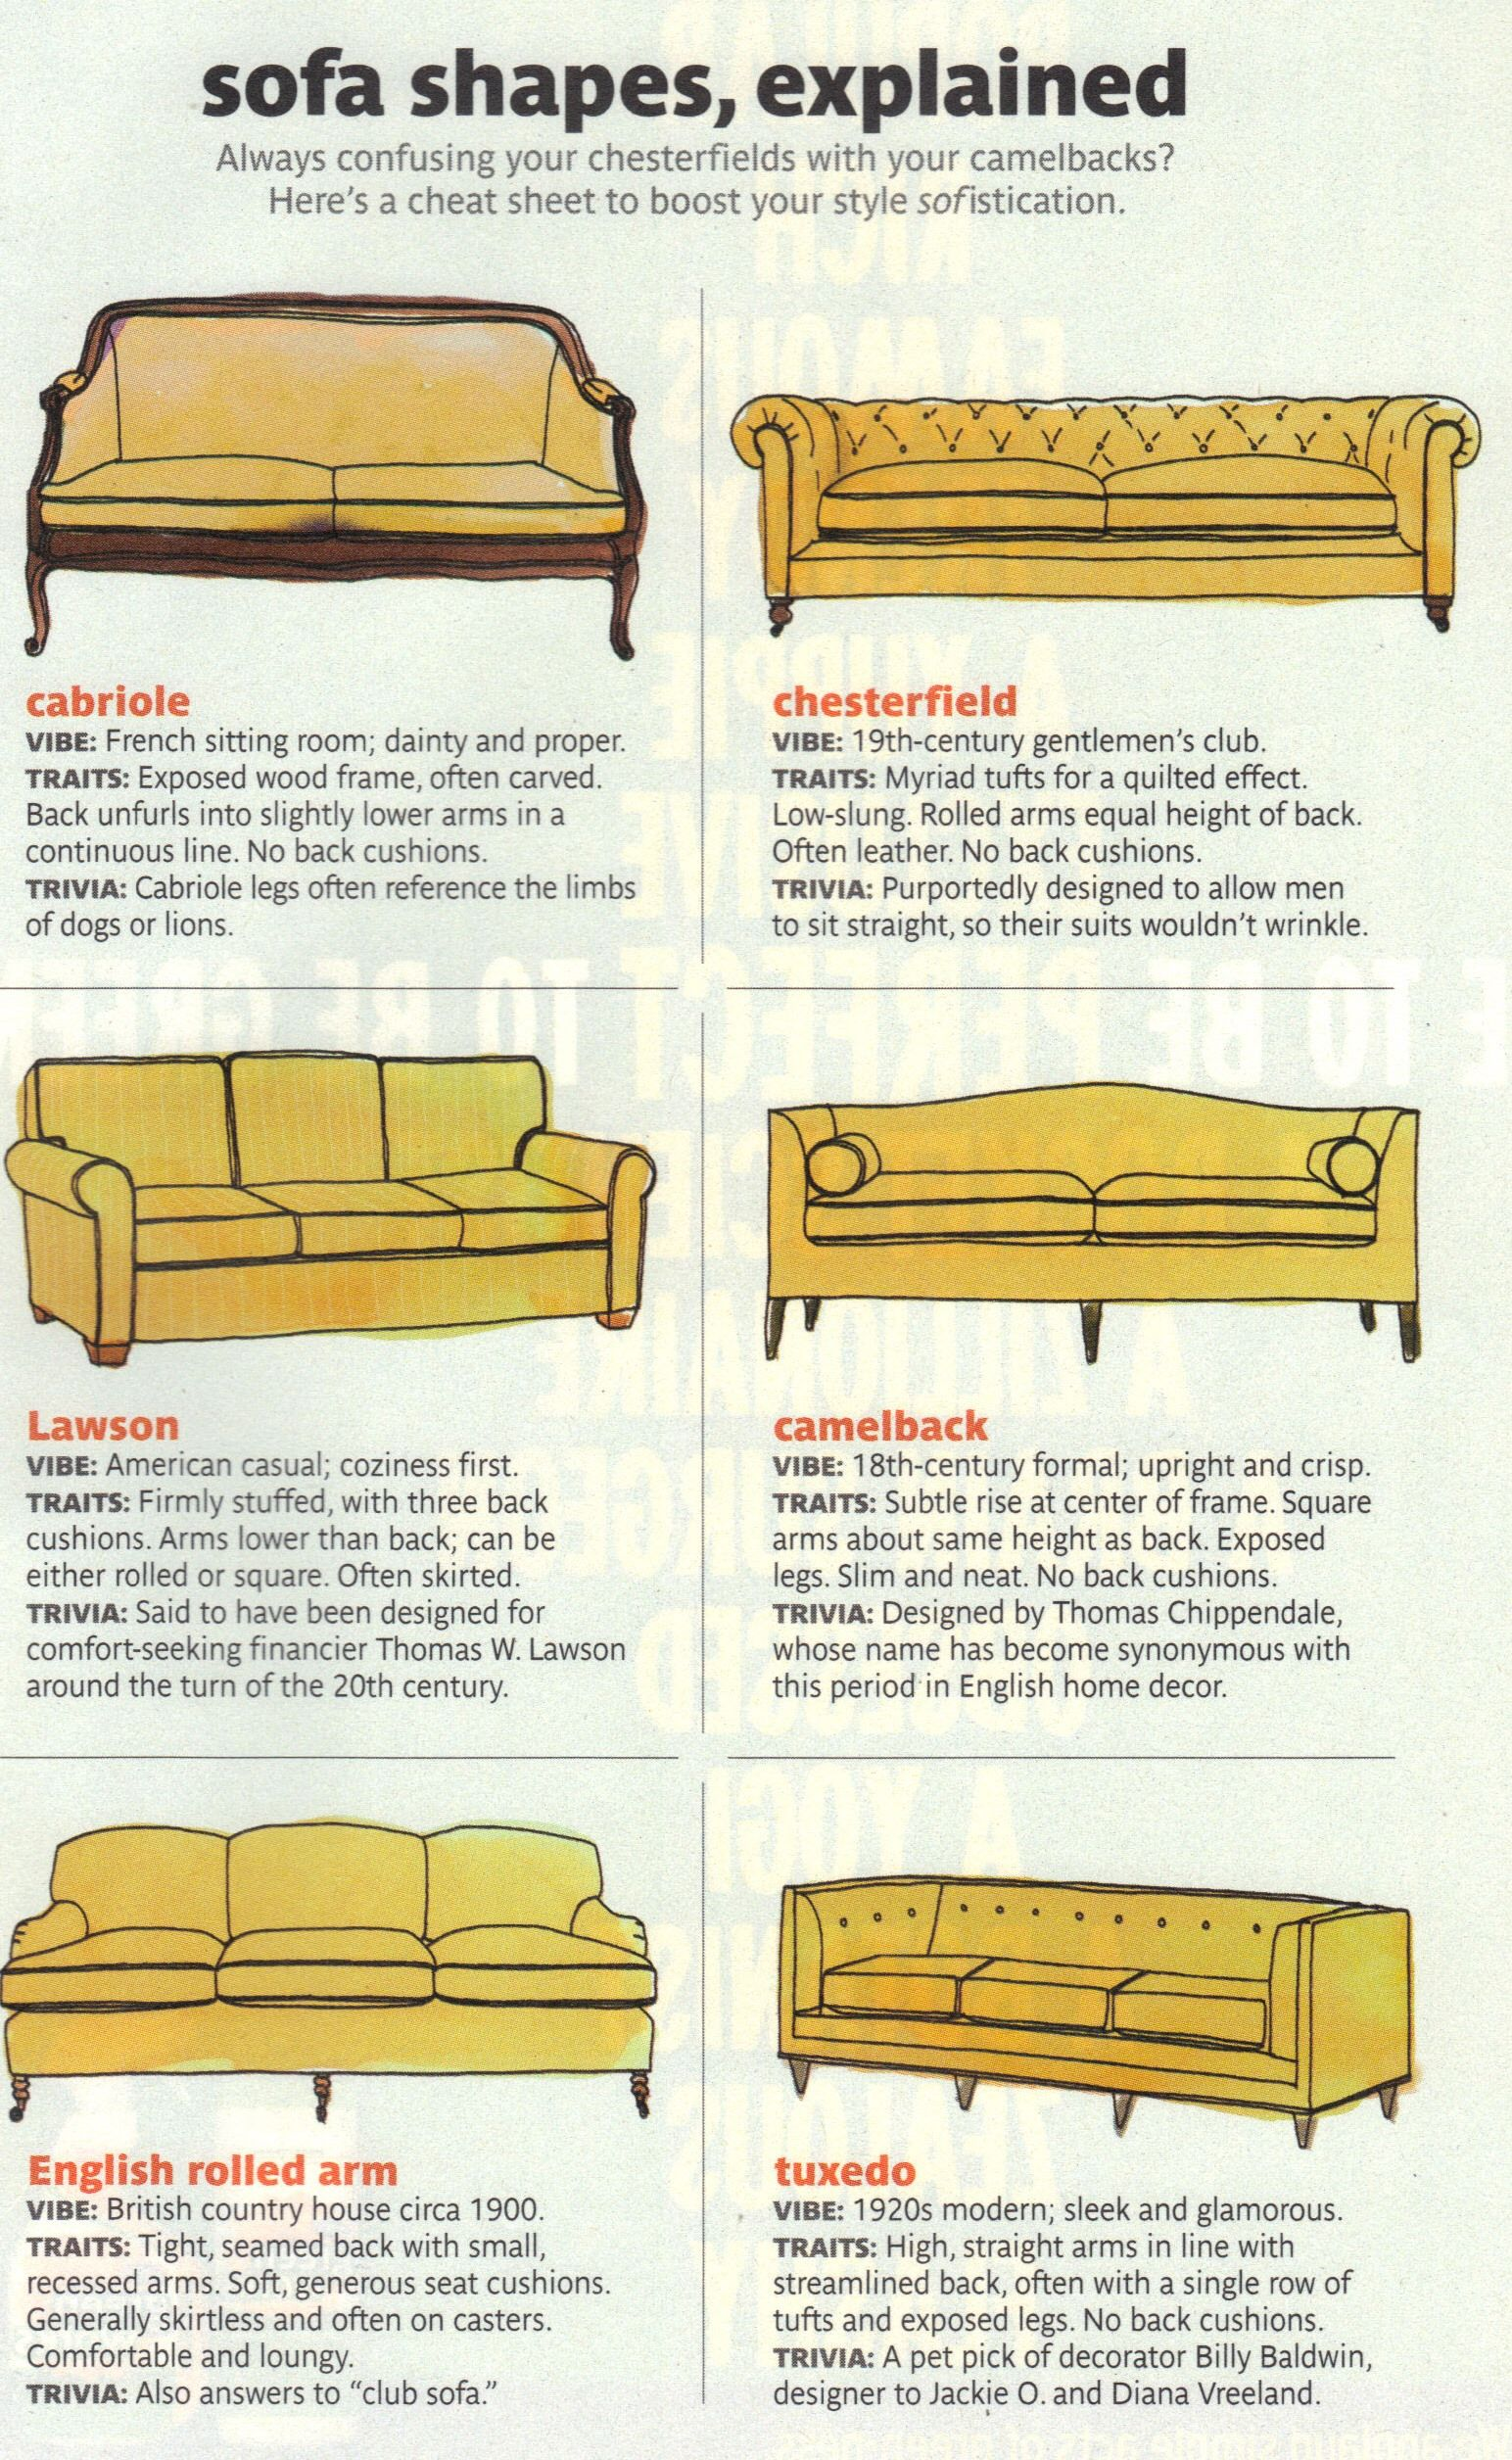 Common Sofa Or Couch Styles And Their Names Learn To How To Refer To Your Living Room Furniture Like A Sofa Styling Decorating Your Home Interior Design Tips